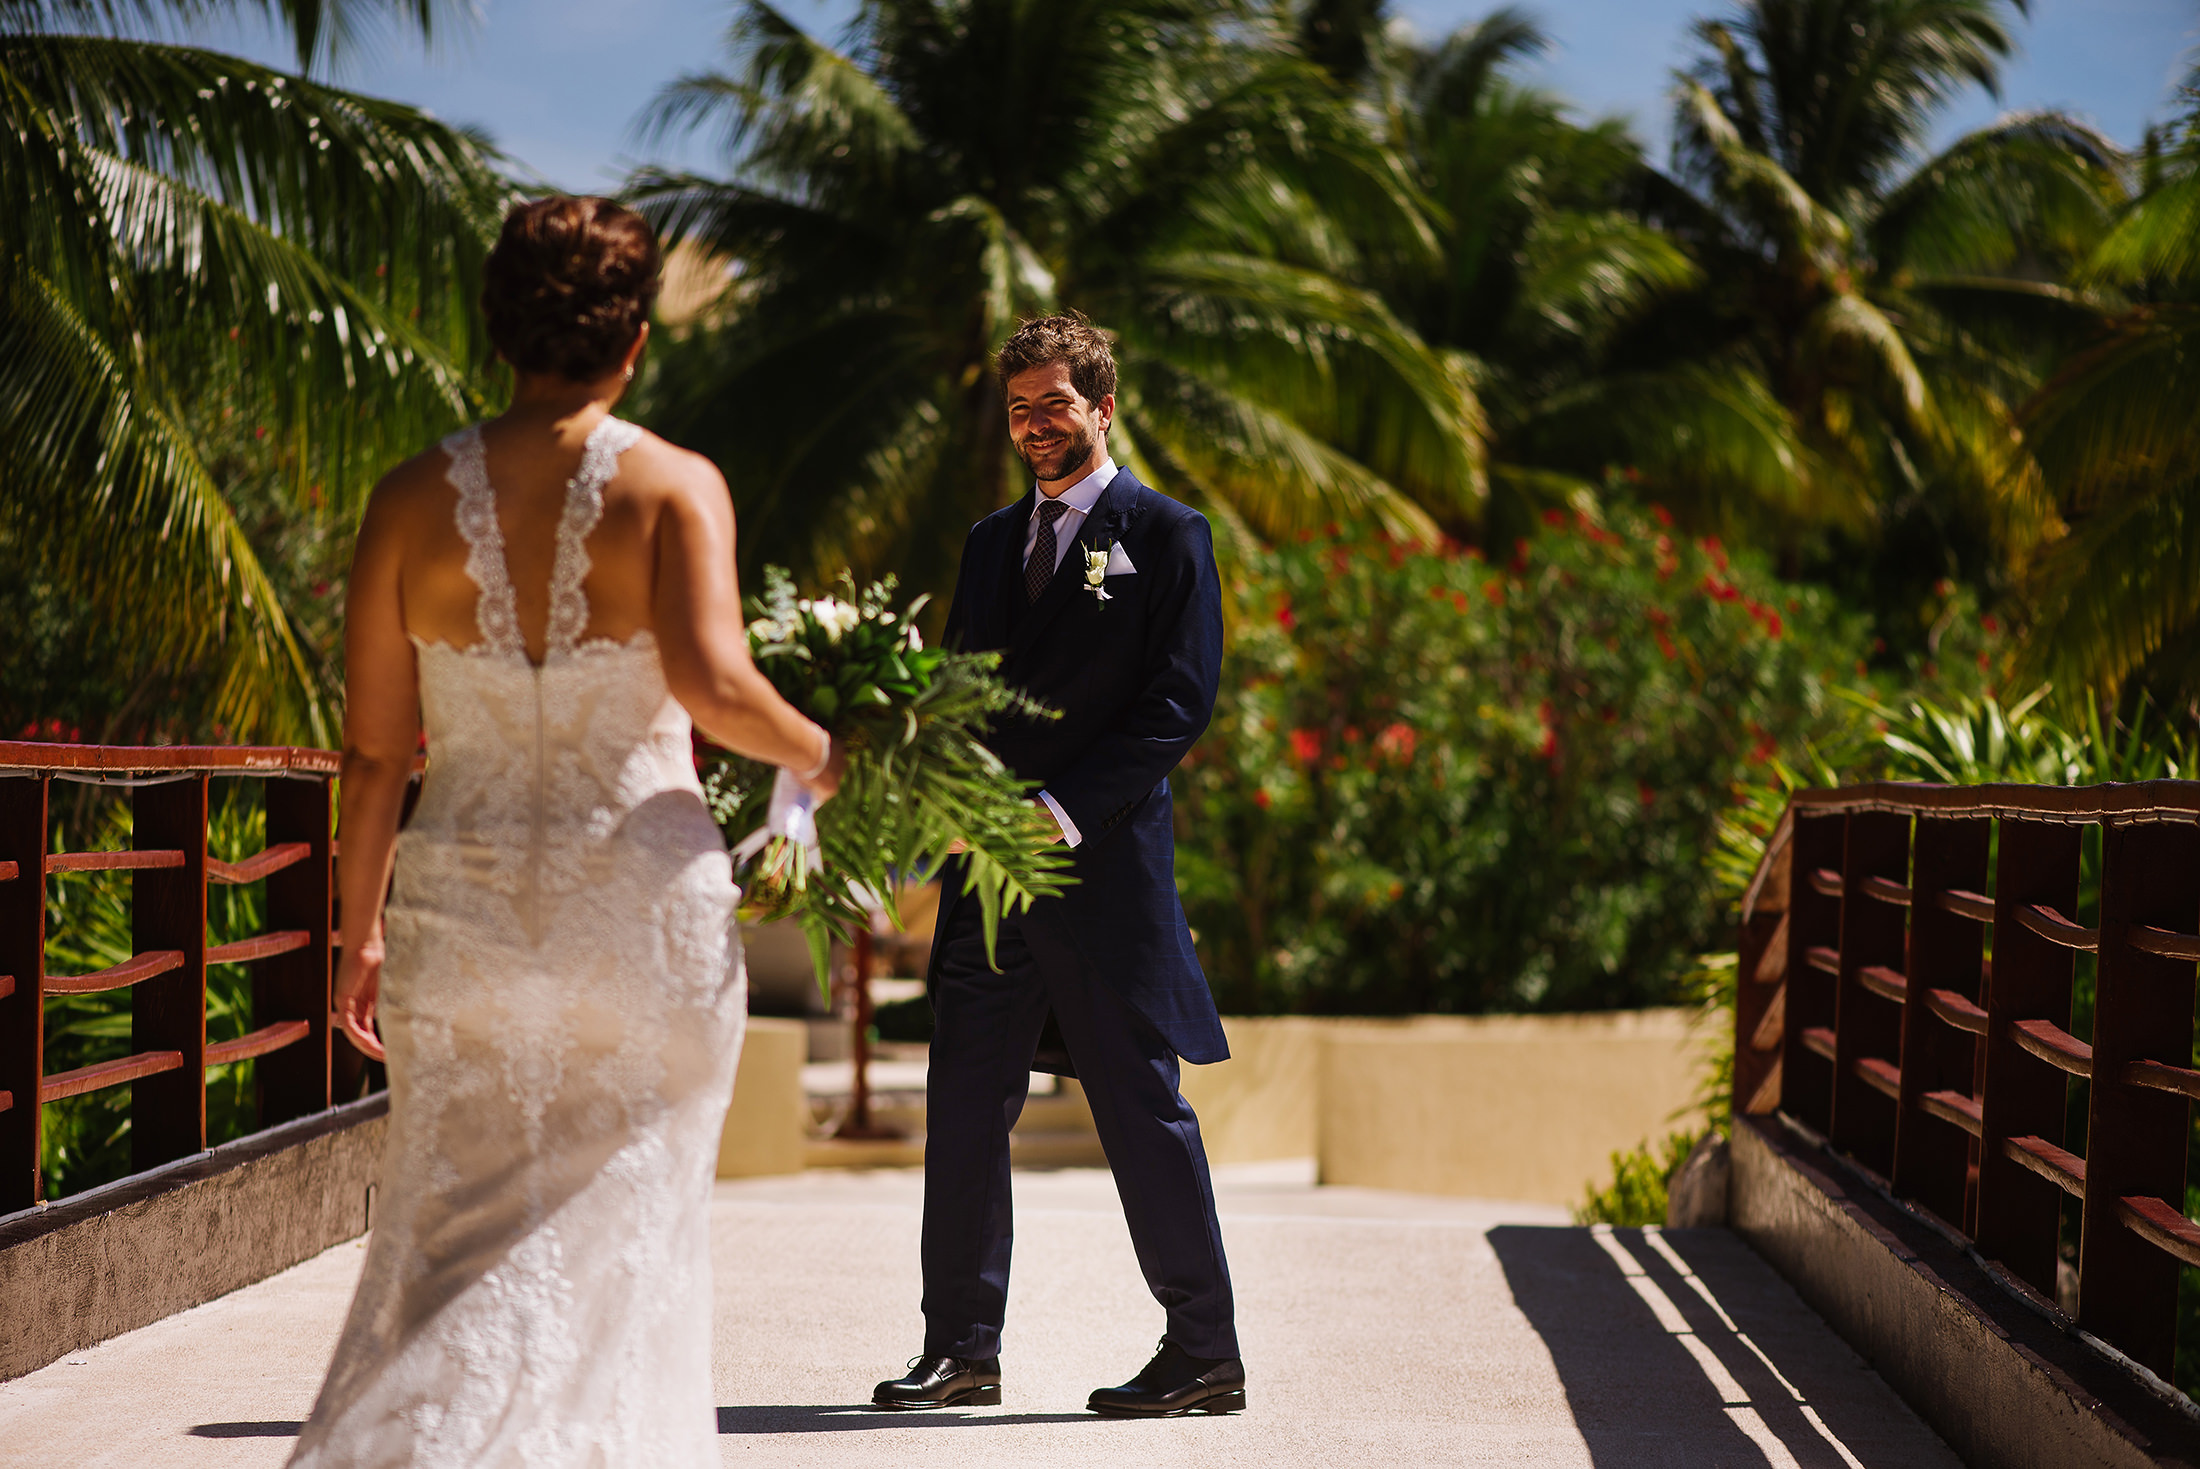 Groom sees bride for the first time in a Riviera Maya First look